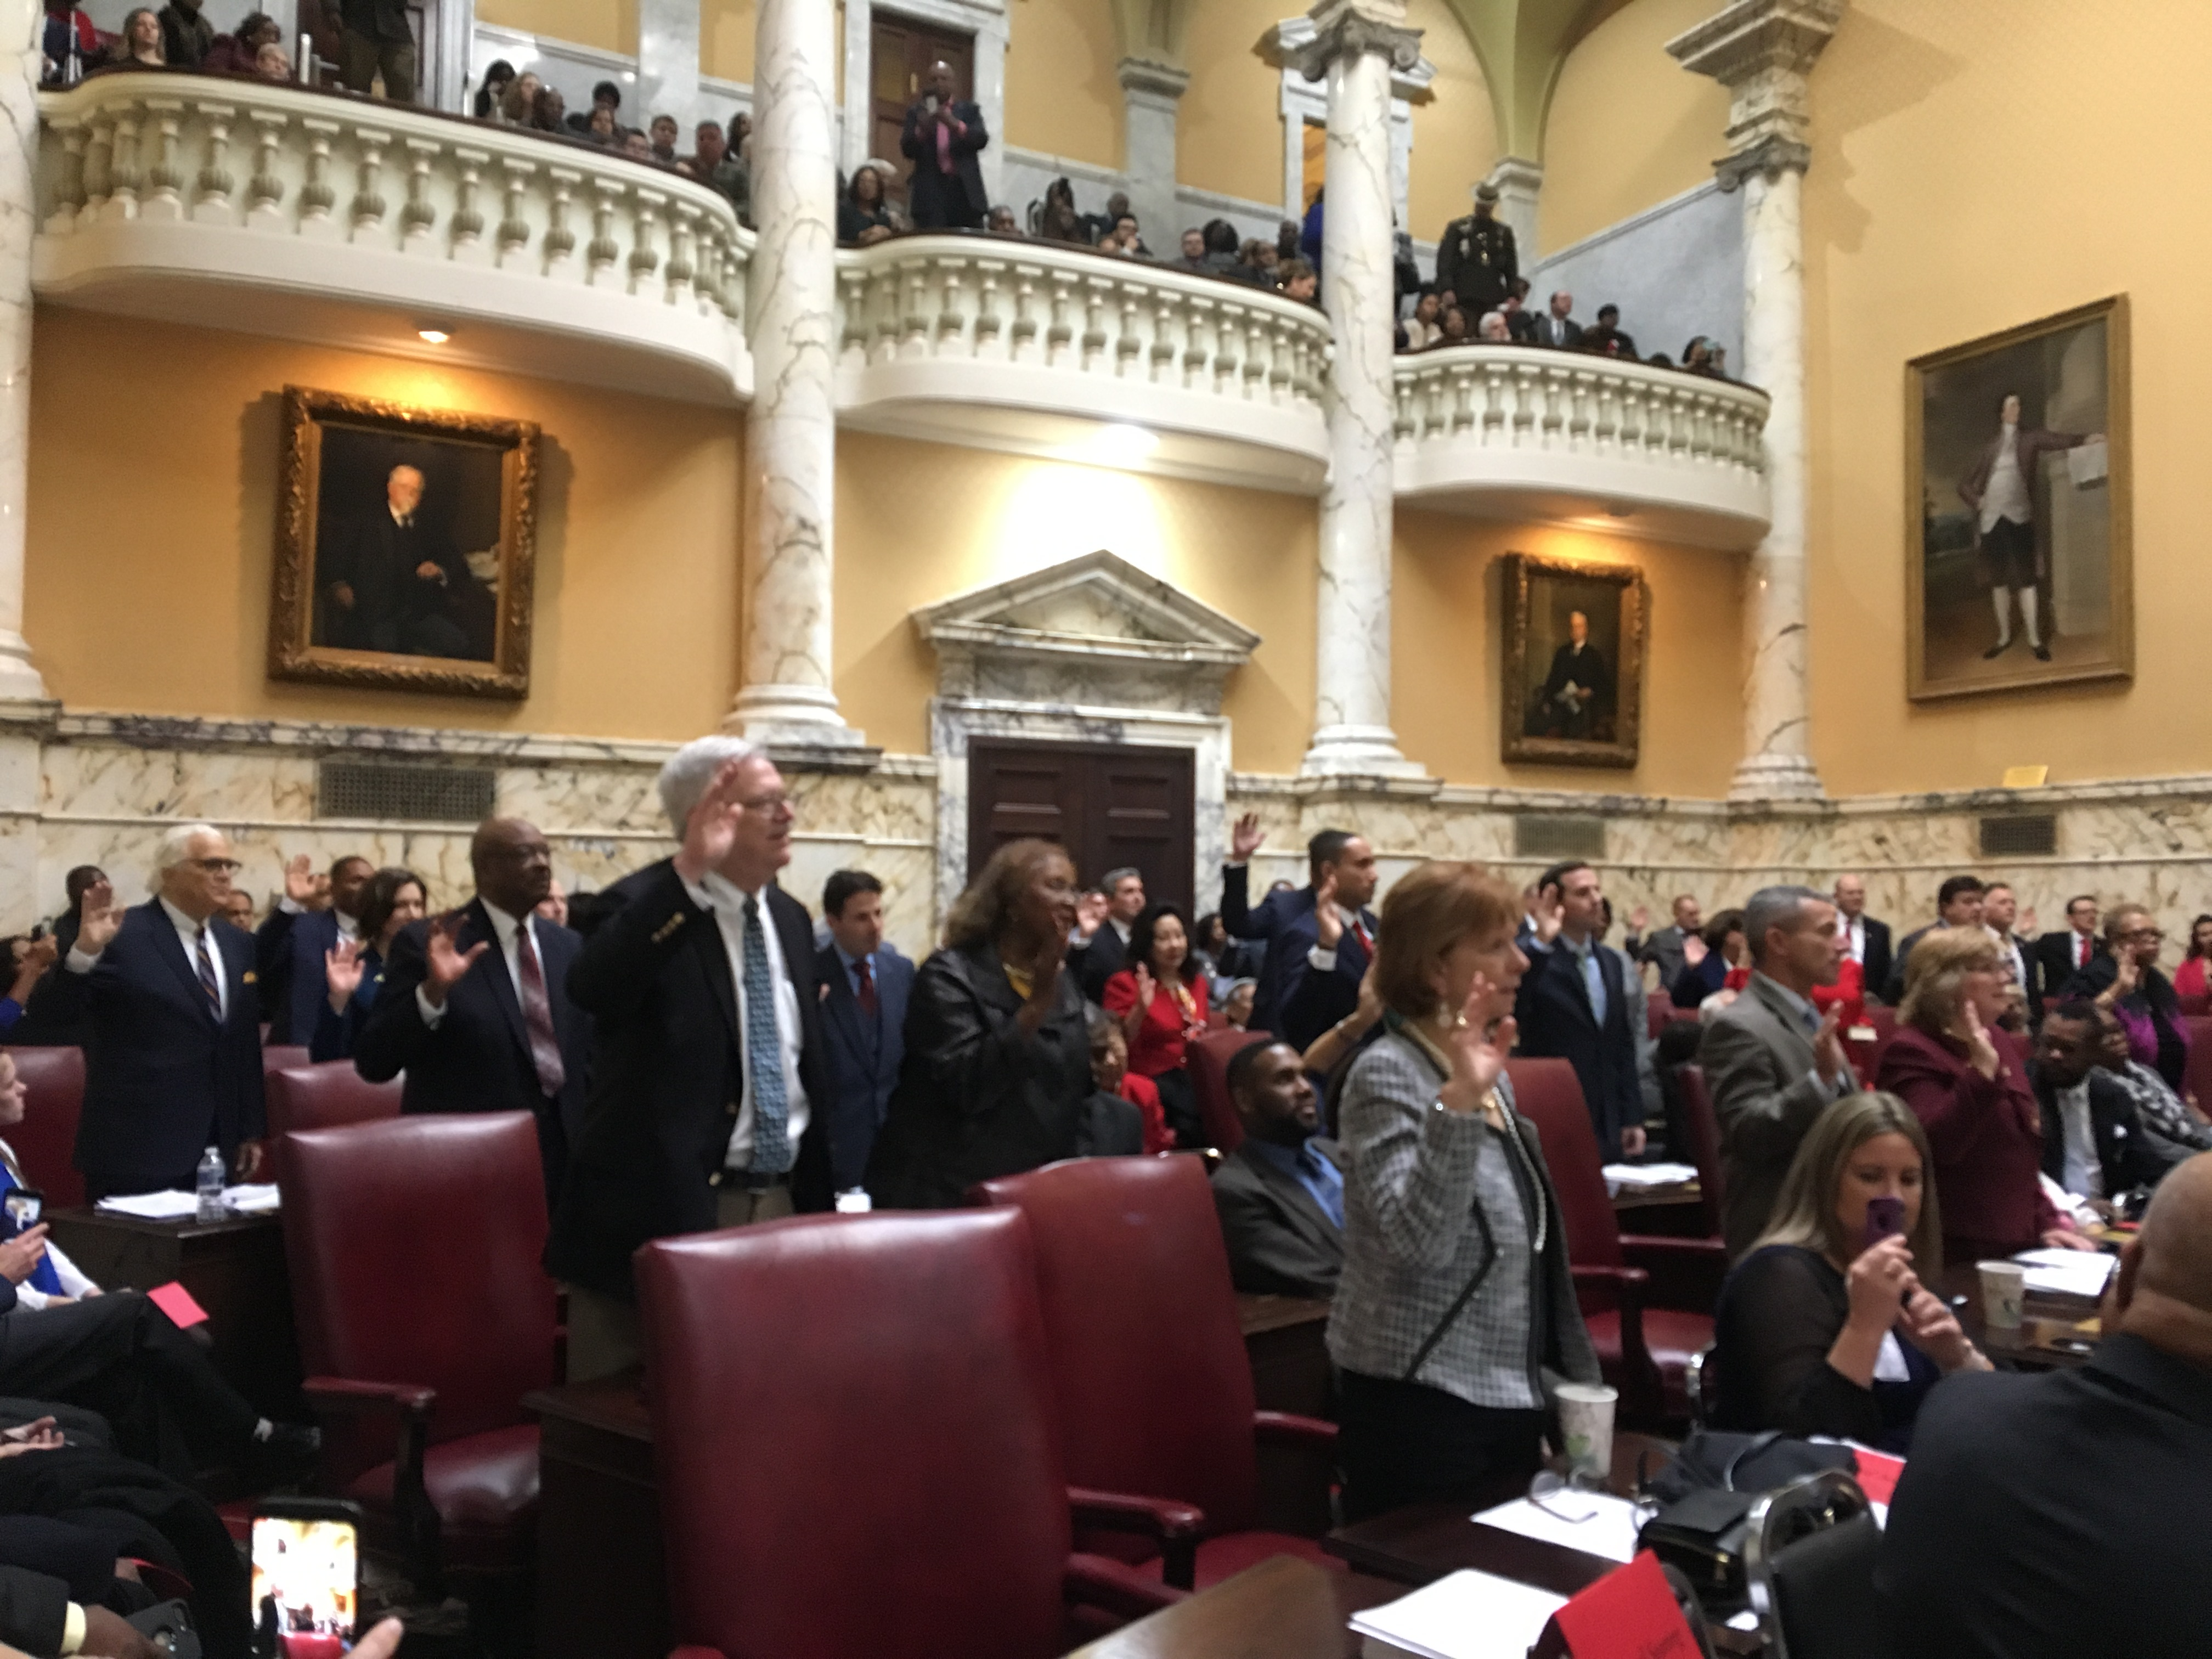 Gallery: Opening day of the new Maryland General Assembly